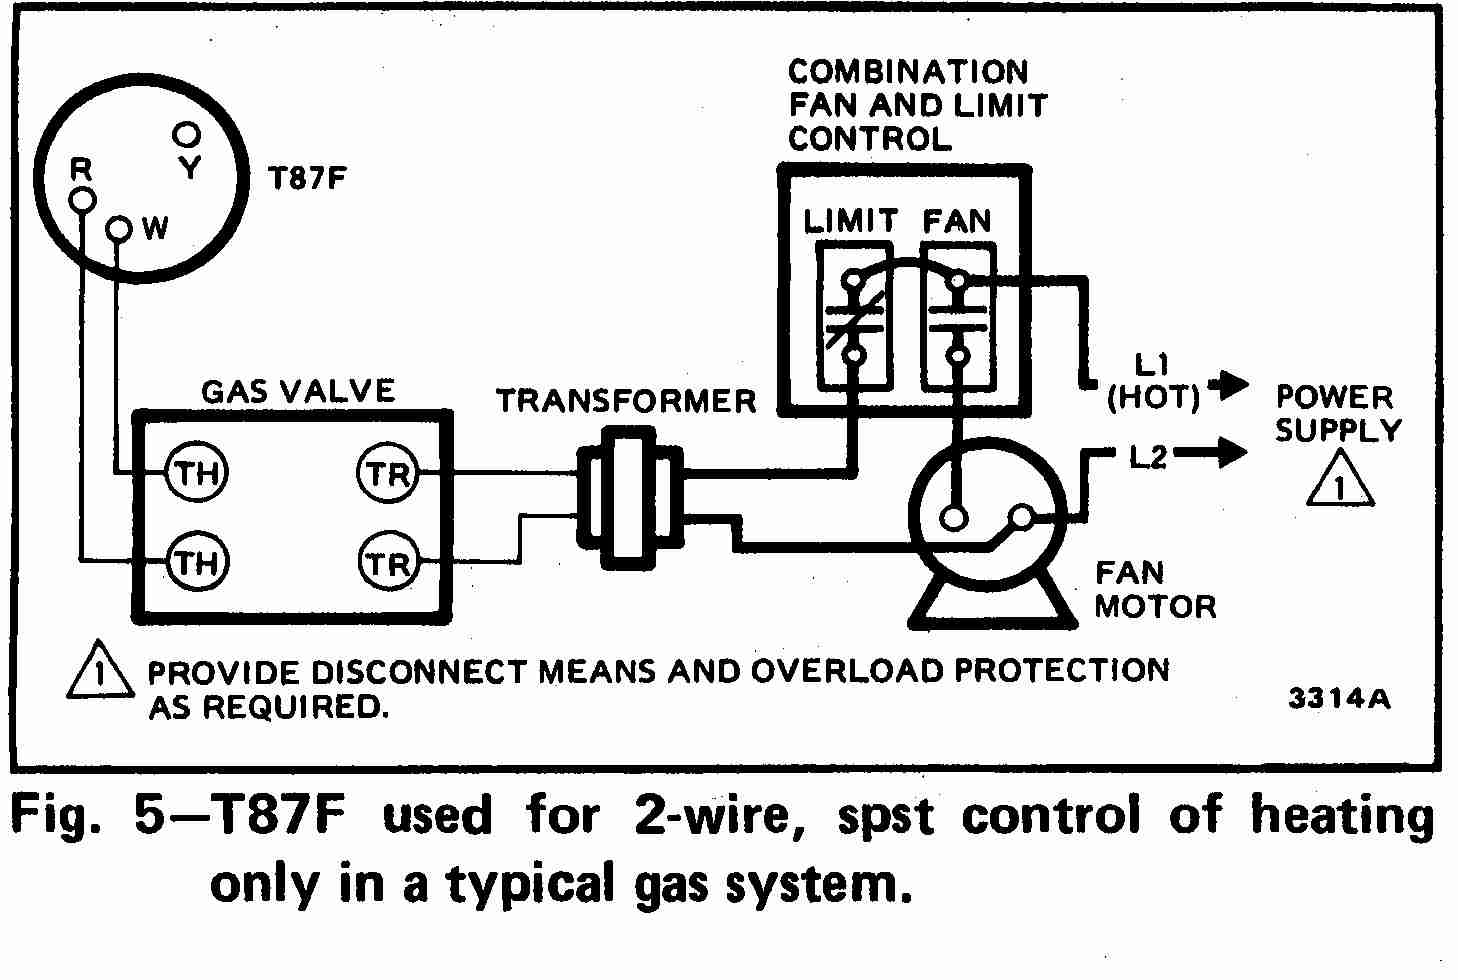 TT_T87F_0002_2Wg_DJF room thermostat wiring diagrams for hvac systems furnace wiring diagrams at gsmportal.co